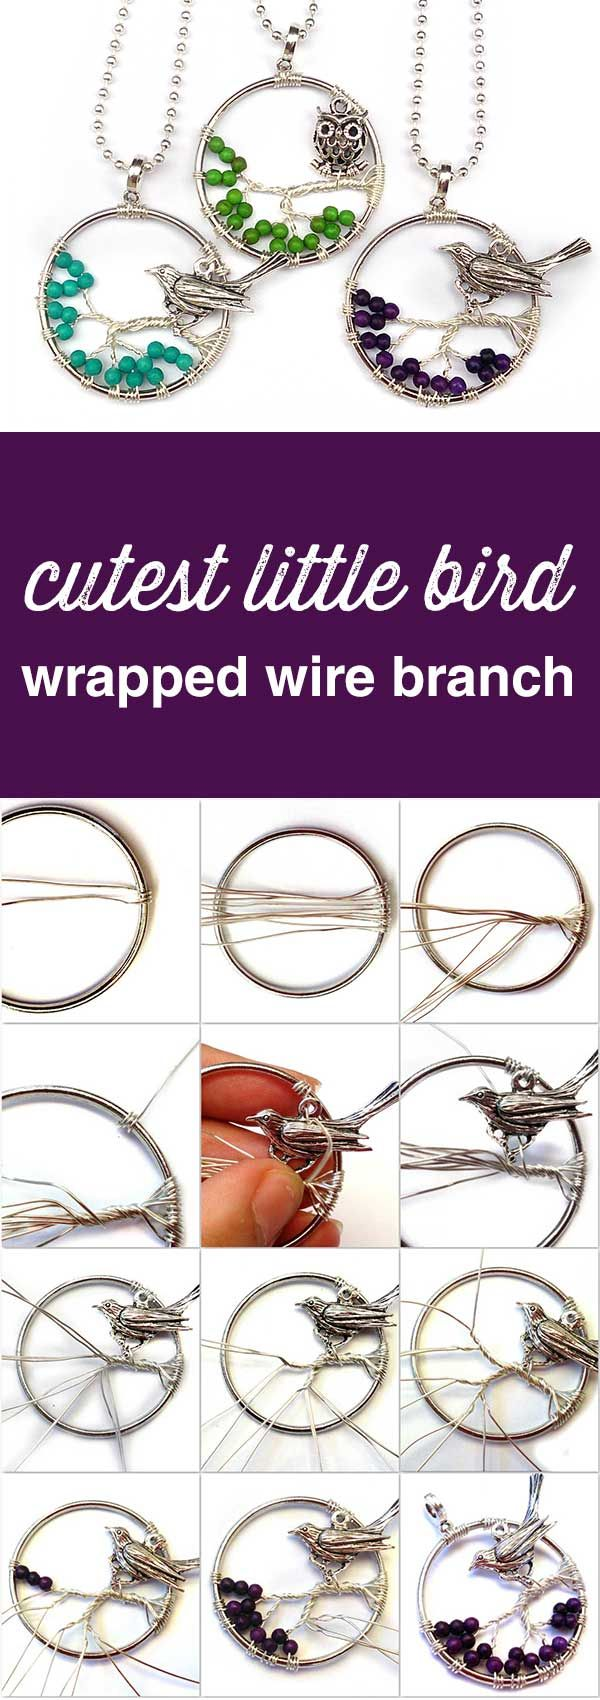 494 best online tutorials images on pinterest crafts diy kid how to make a bird or owl charm sitting on a wire branch free online jewellery making tutorials baditri Gallery